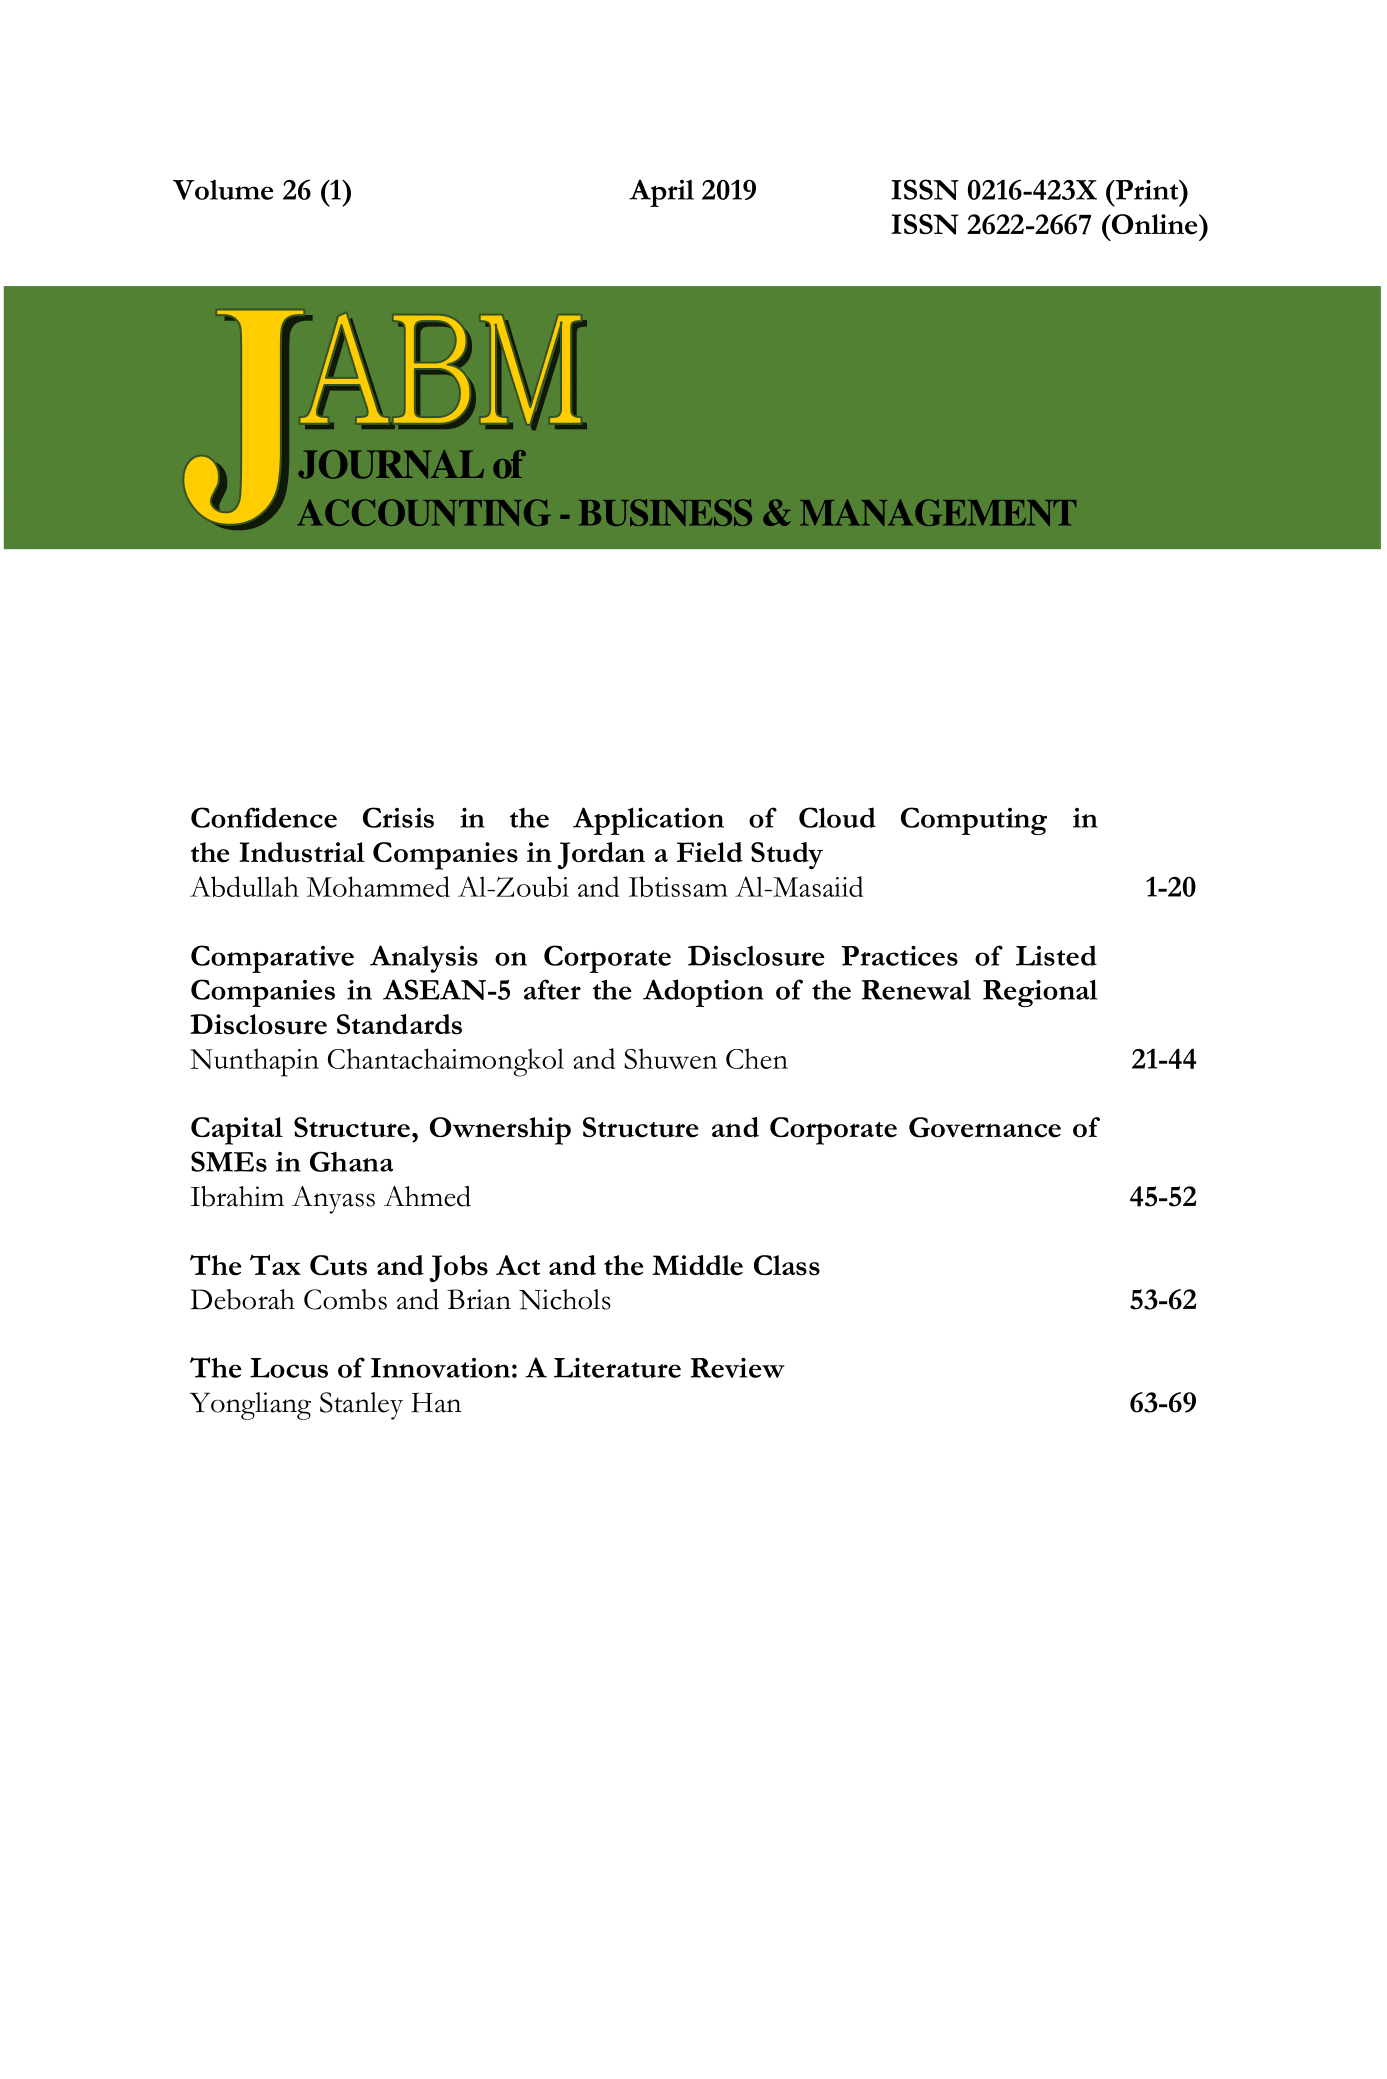 Journal of Accounting, Business and Management (JABM)